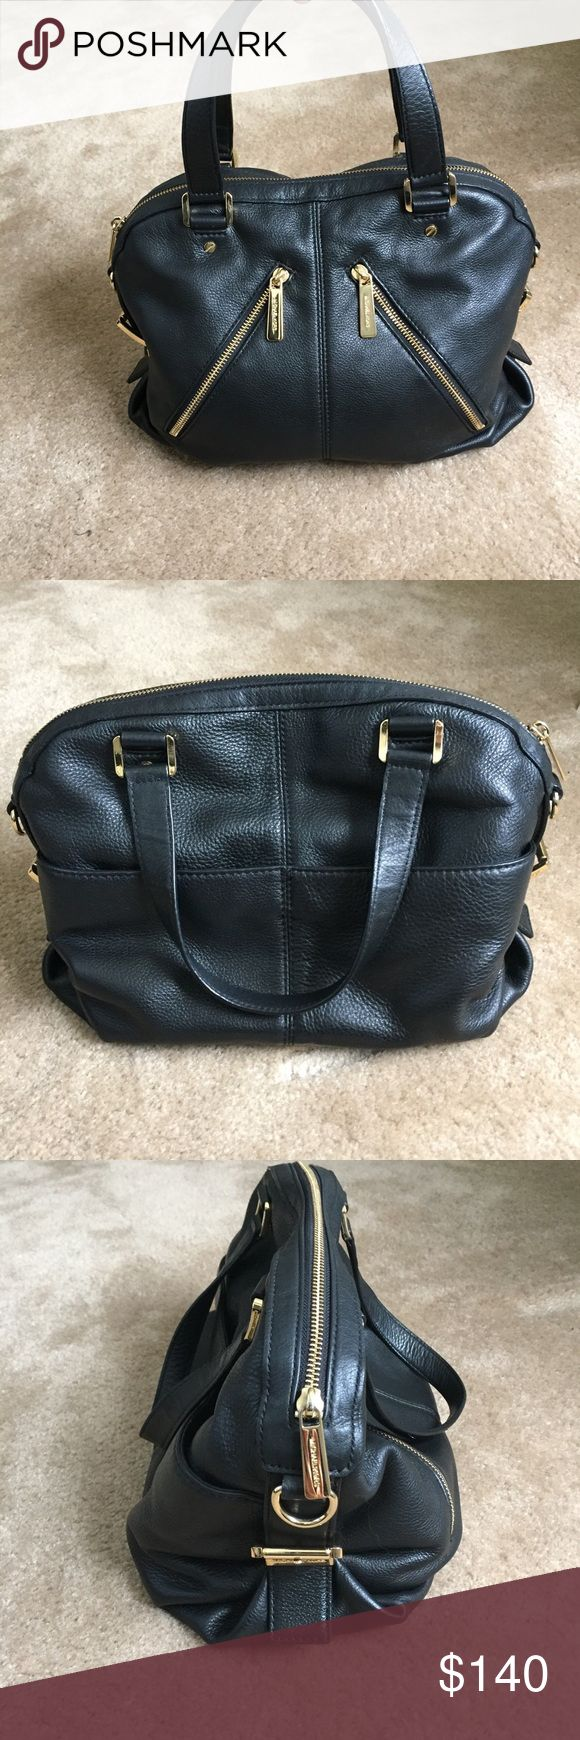 Black Michael Kors bag Perfect condition MK bag! Soft leather, gold hardware with crossbody strap (strap was never used). Purchased at Bloomingdales. Always got lots of compliments on this bag! Debated selling but I bought a different black bag the same size 😕 Michael Kors Bags